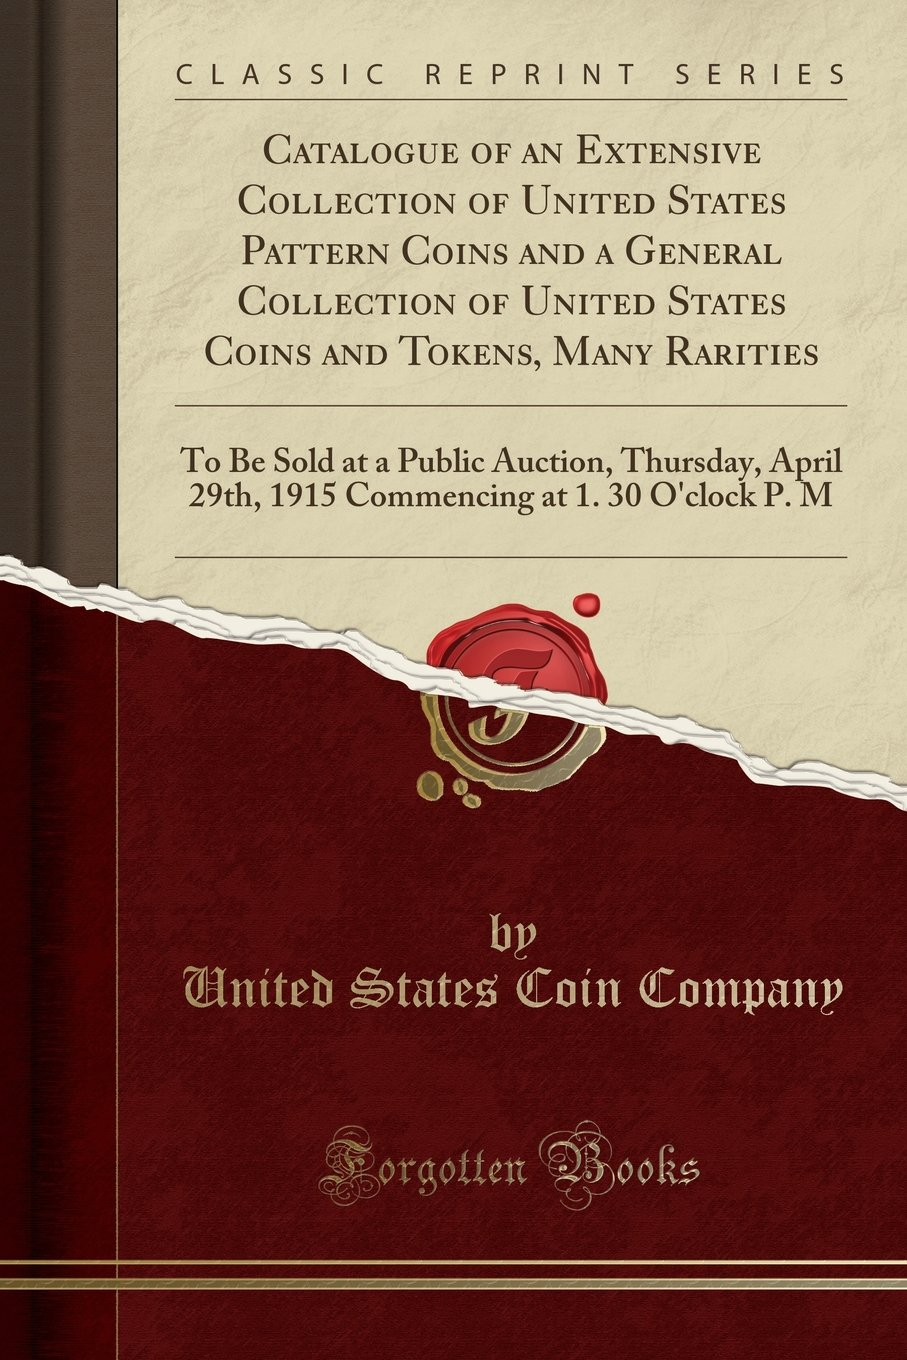 Read Online Catalogue of an Extensive Collection of United States Pattern Coins and a General Collection of United States Coins and Tokens, Many Rarities: To Be ... at 1. 30 O'clock P. M (Classic Reprint) pdf epub